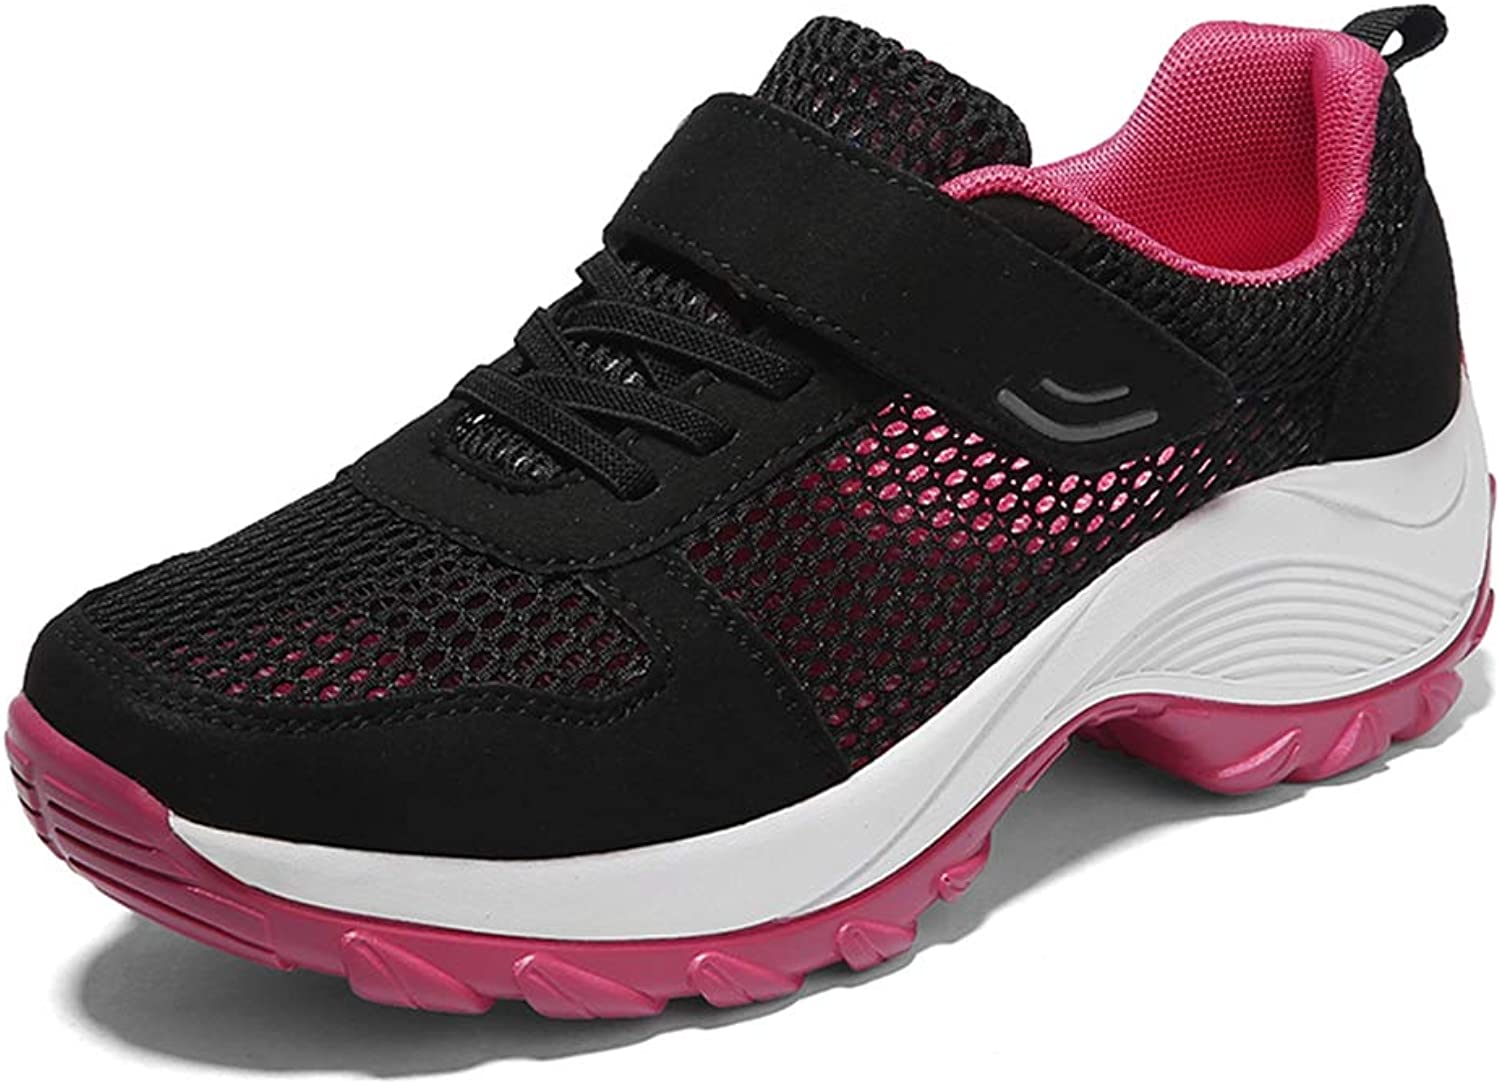 Casual Breathable Shallow Mesh Hook and Loop Wedge shoes Woman Fashion Lightweigh Soft No-Slip Female Sneakers for Dancing